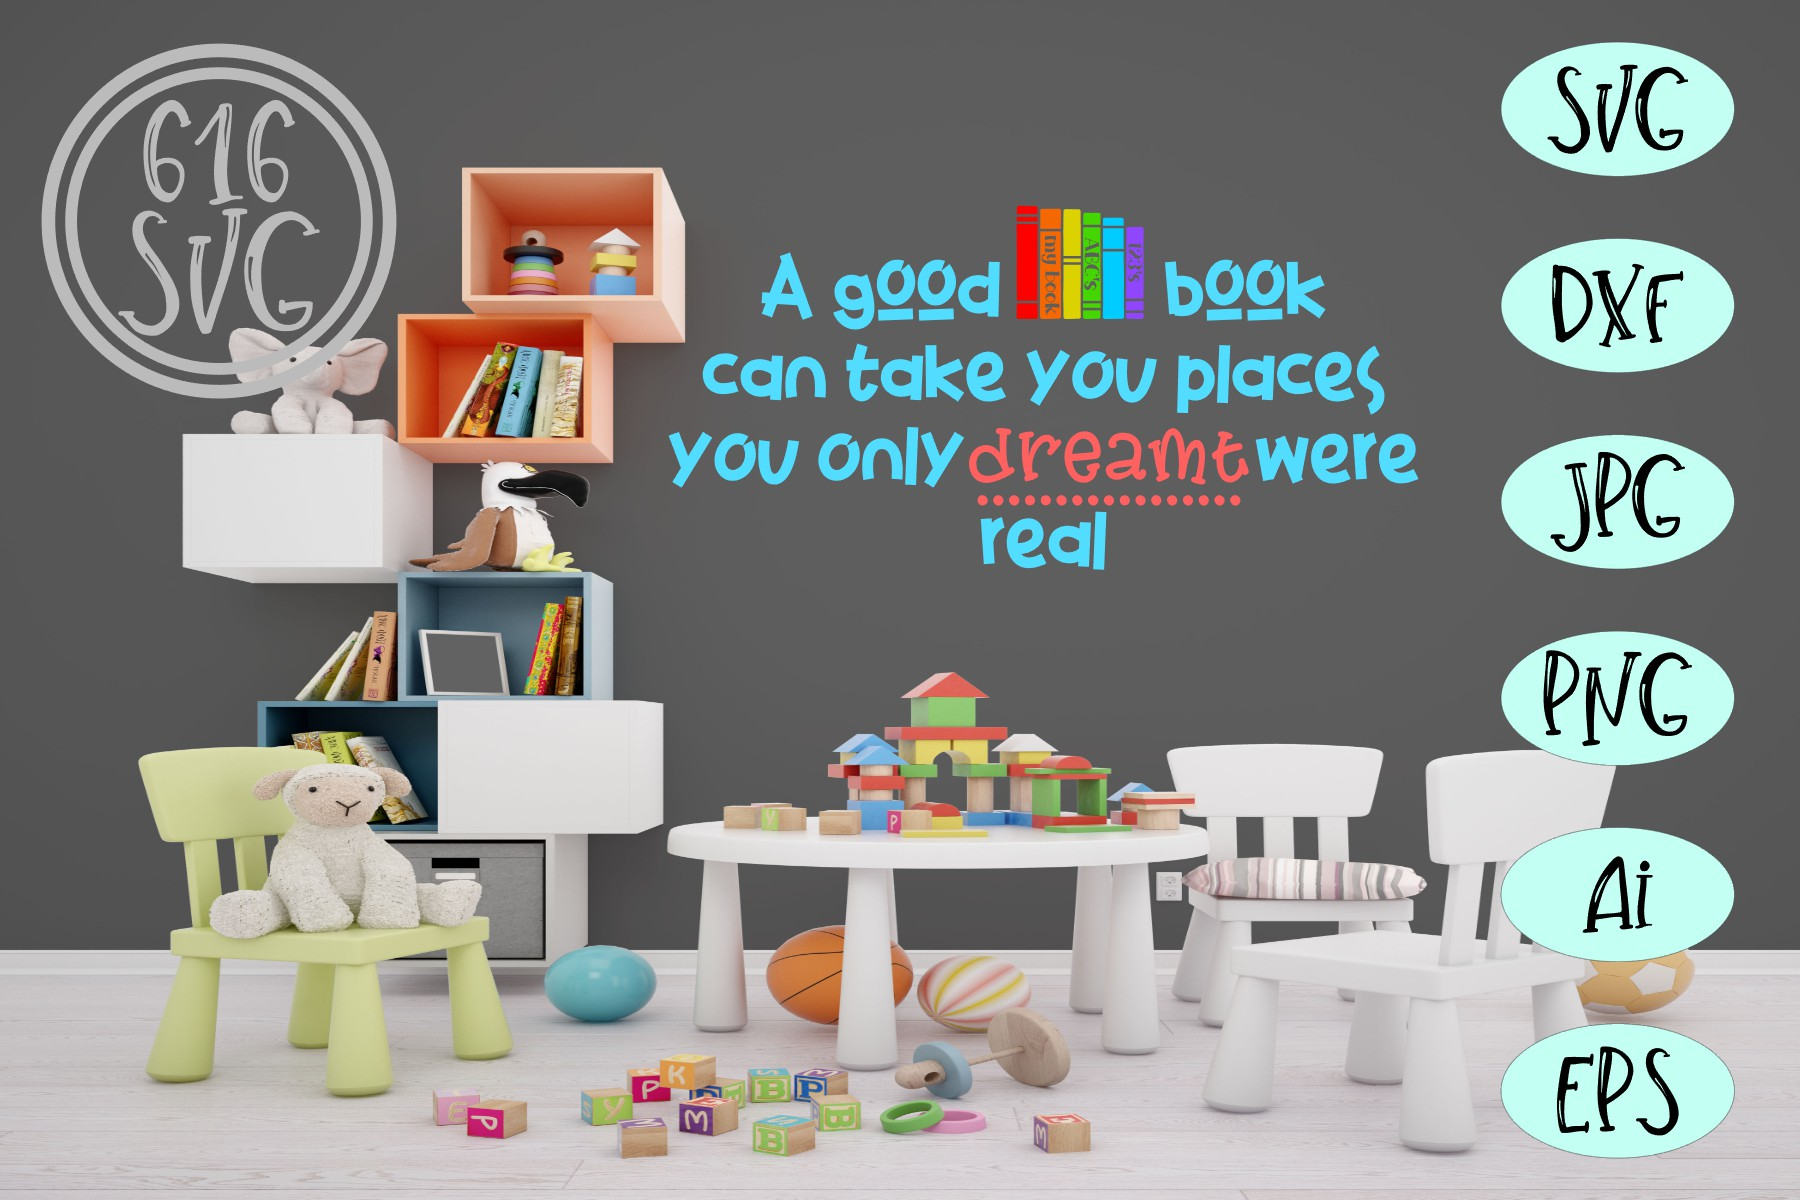 A good book can take you places you only dreamt were real example image 1